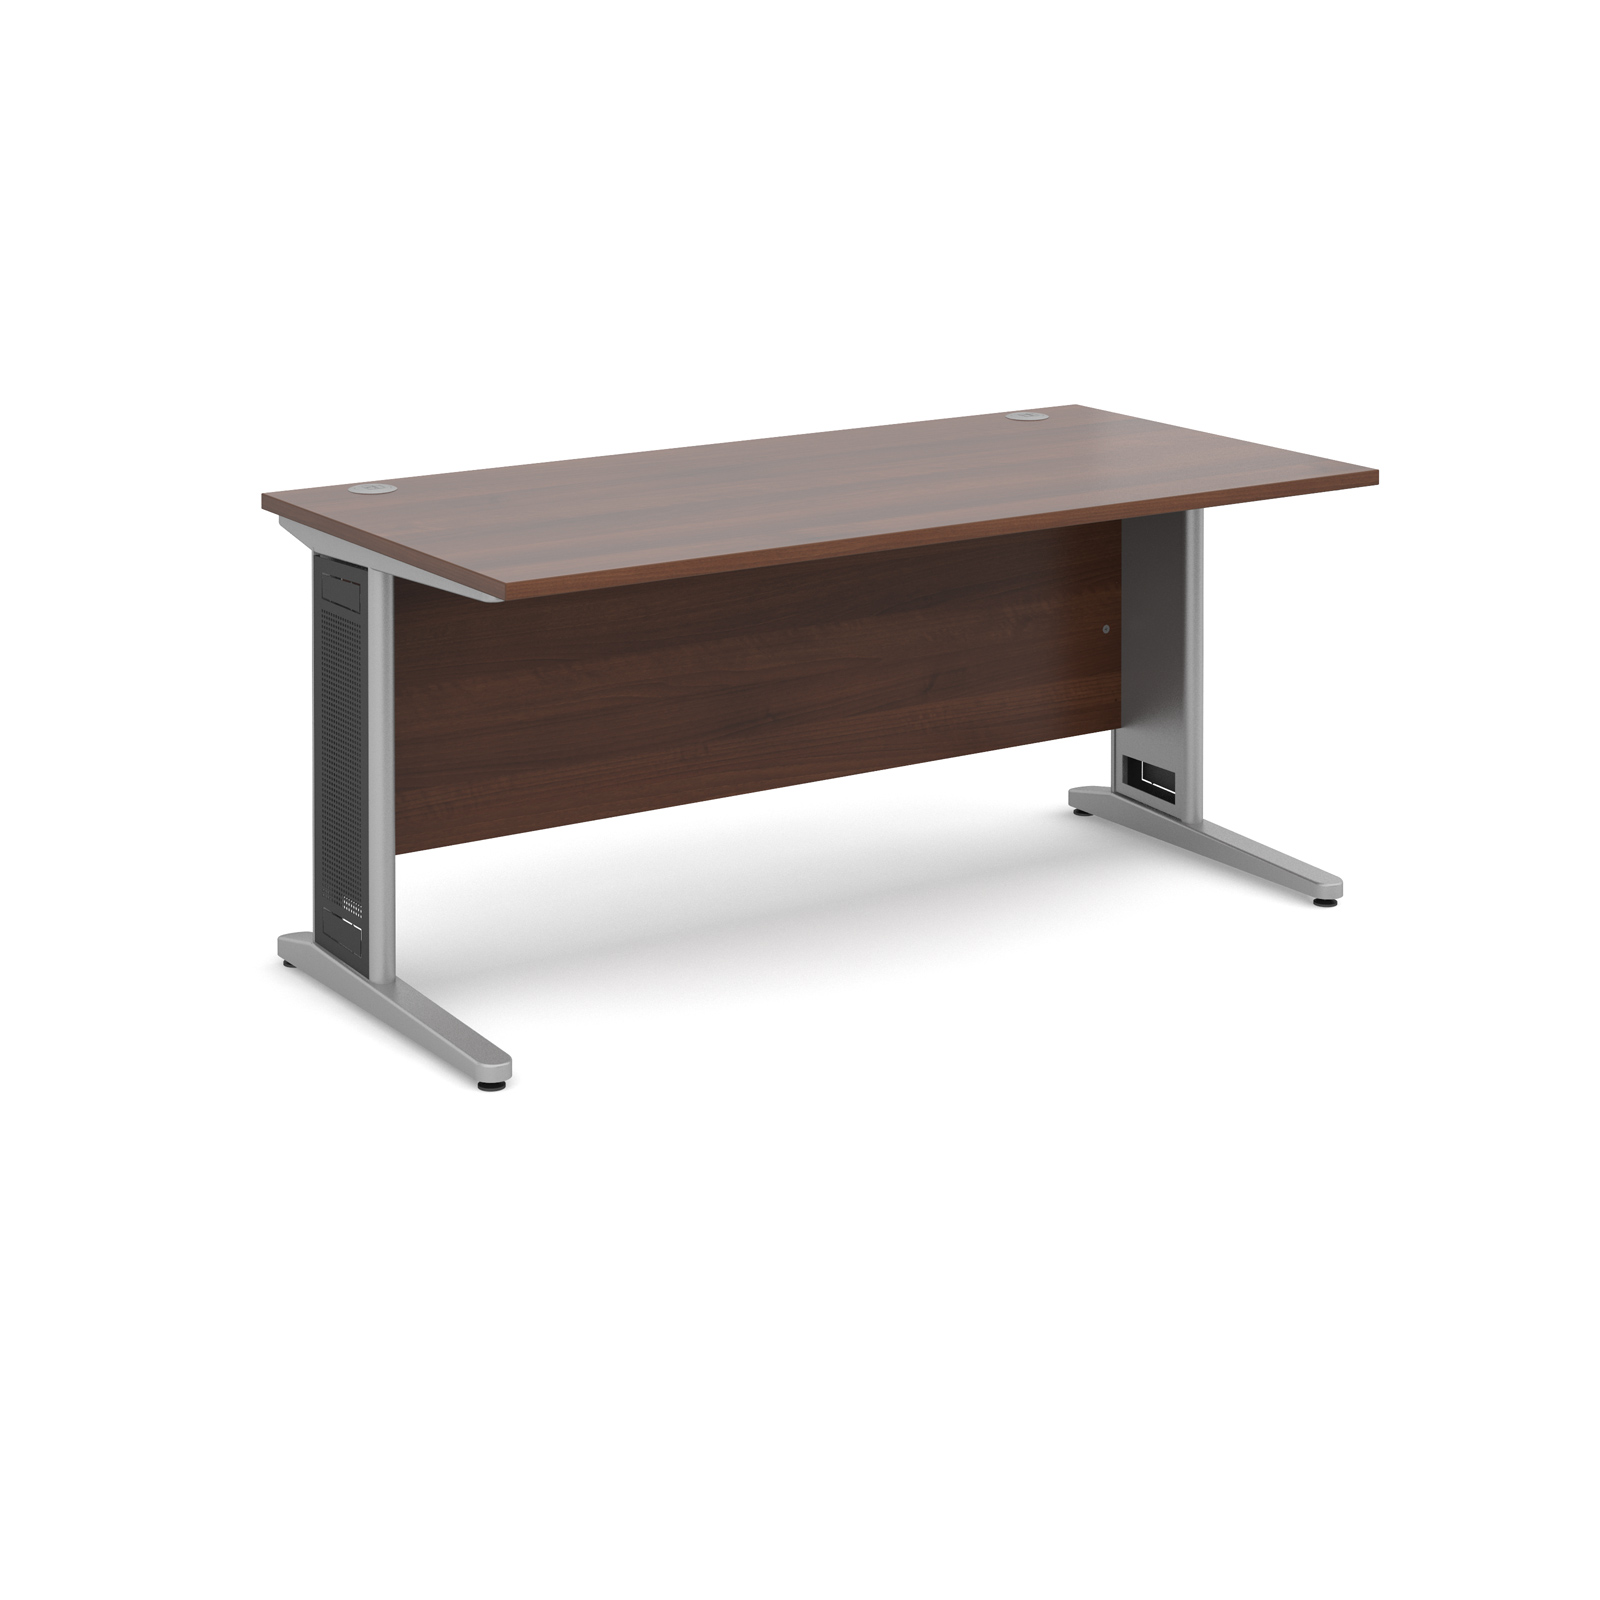 Largo straight desk 1600mm x 800mm - silver cantilever frame with removable grill, walnut top